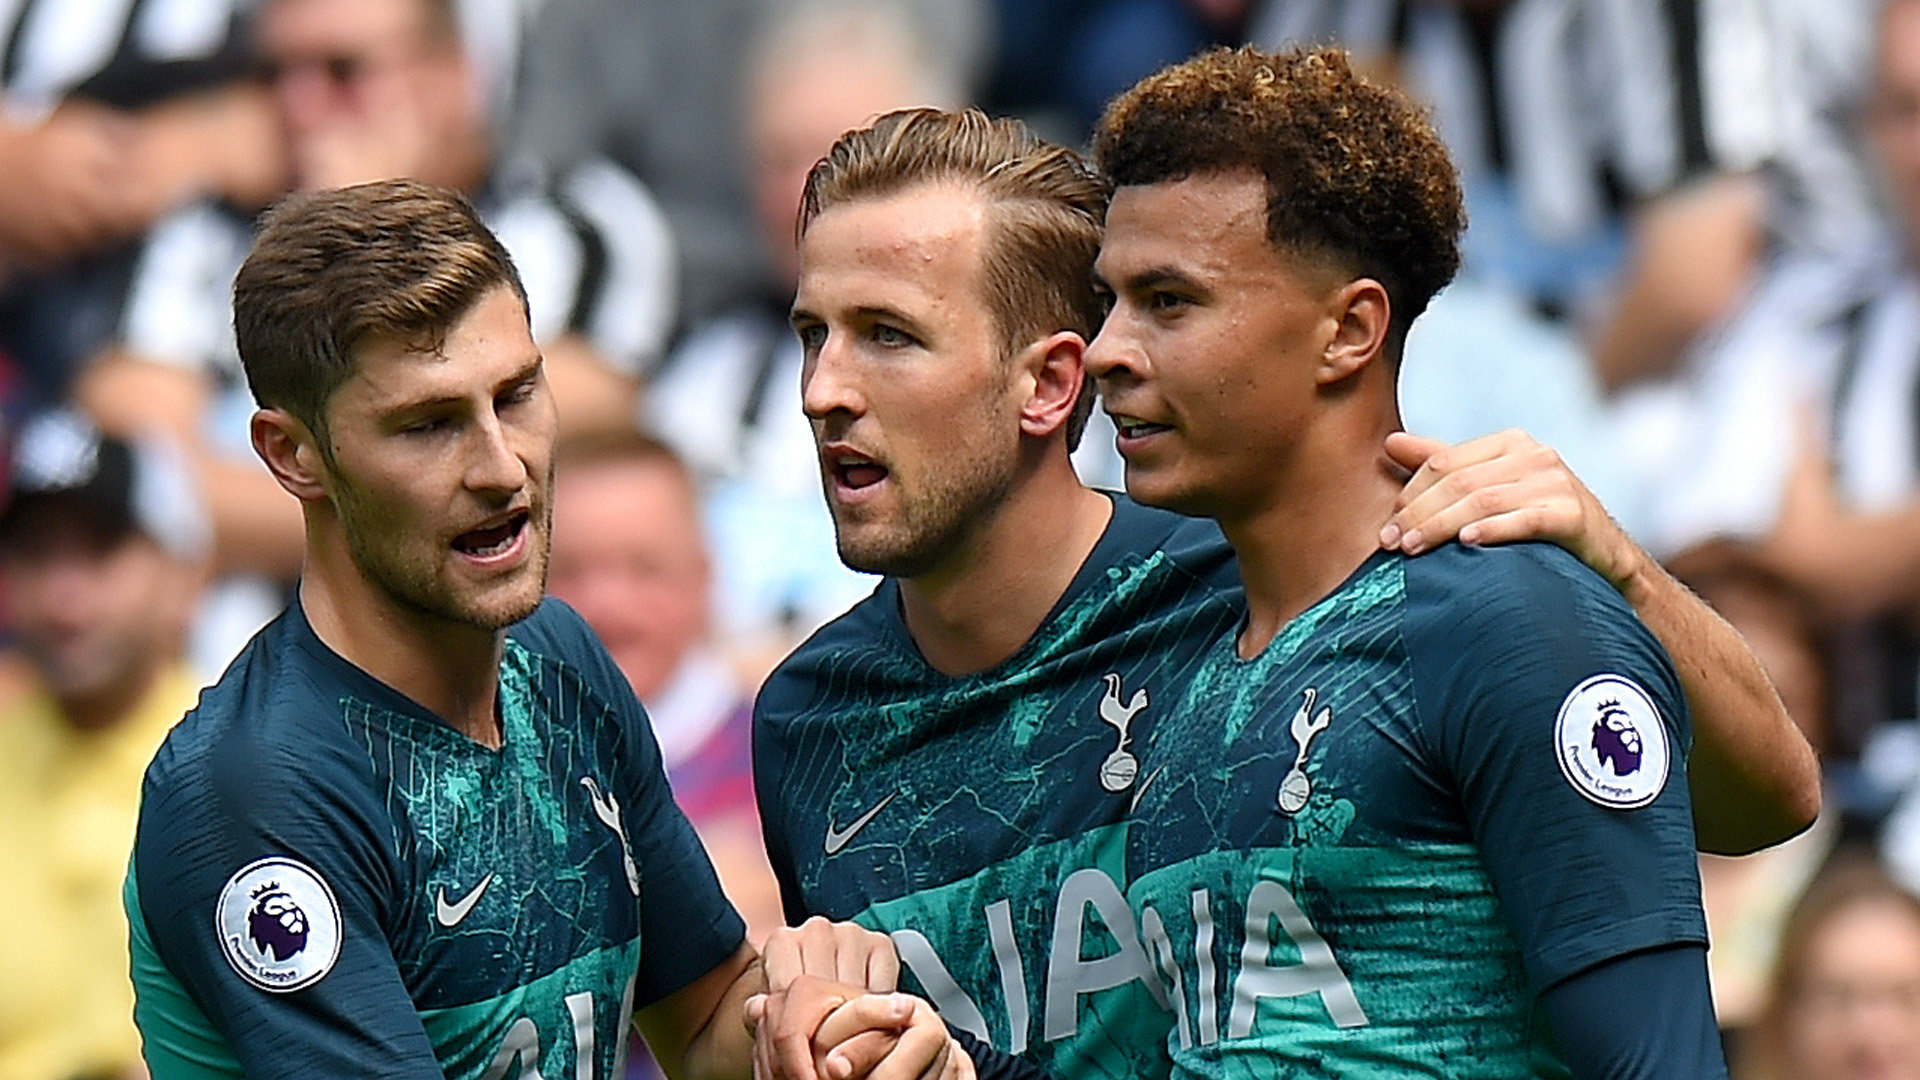 Newcastle 1-2 Tottenham: Dele Alli scores victor  for visitors